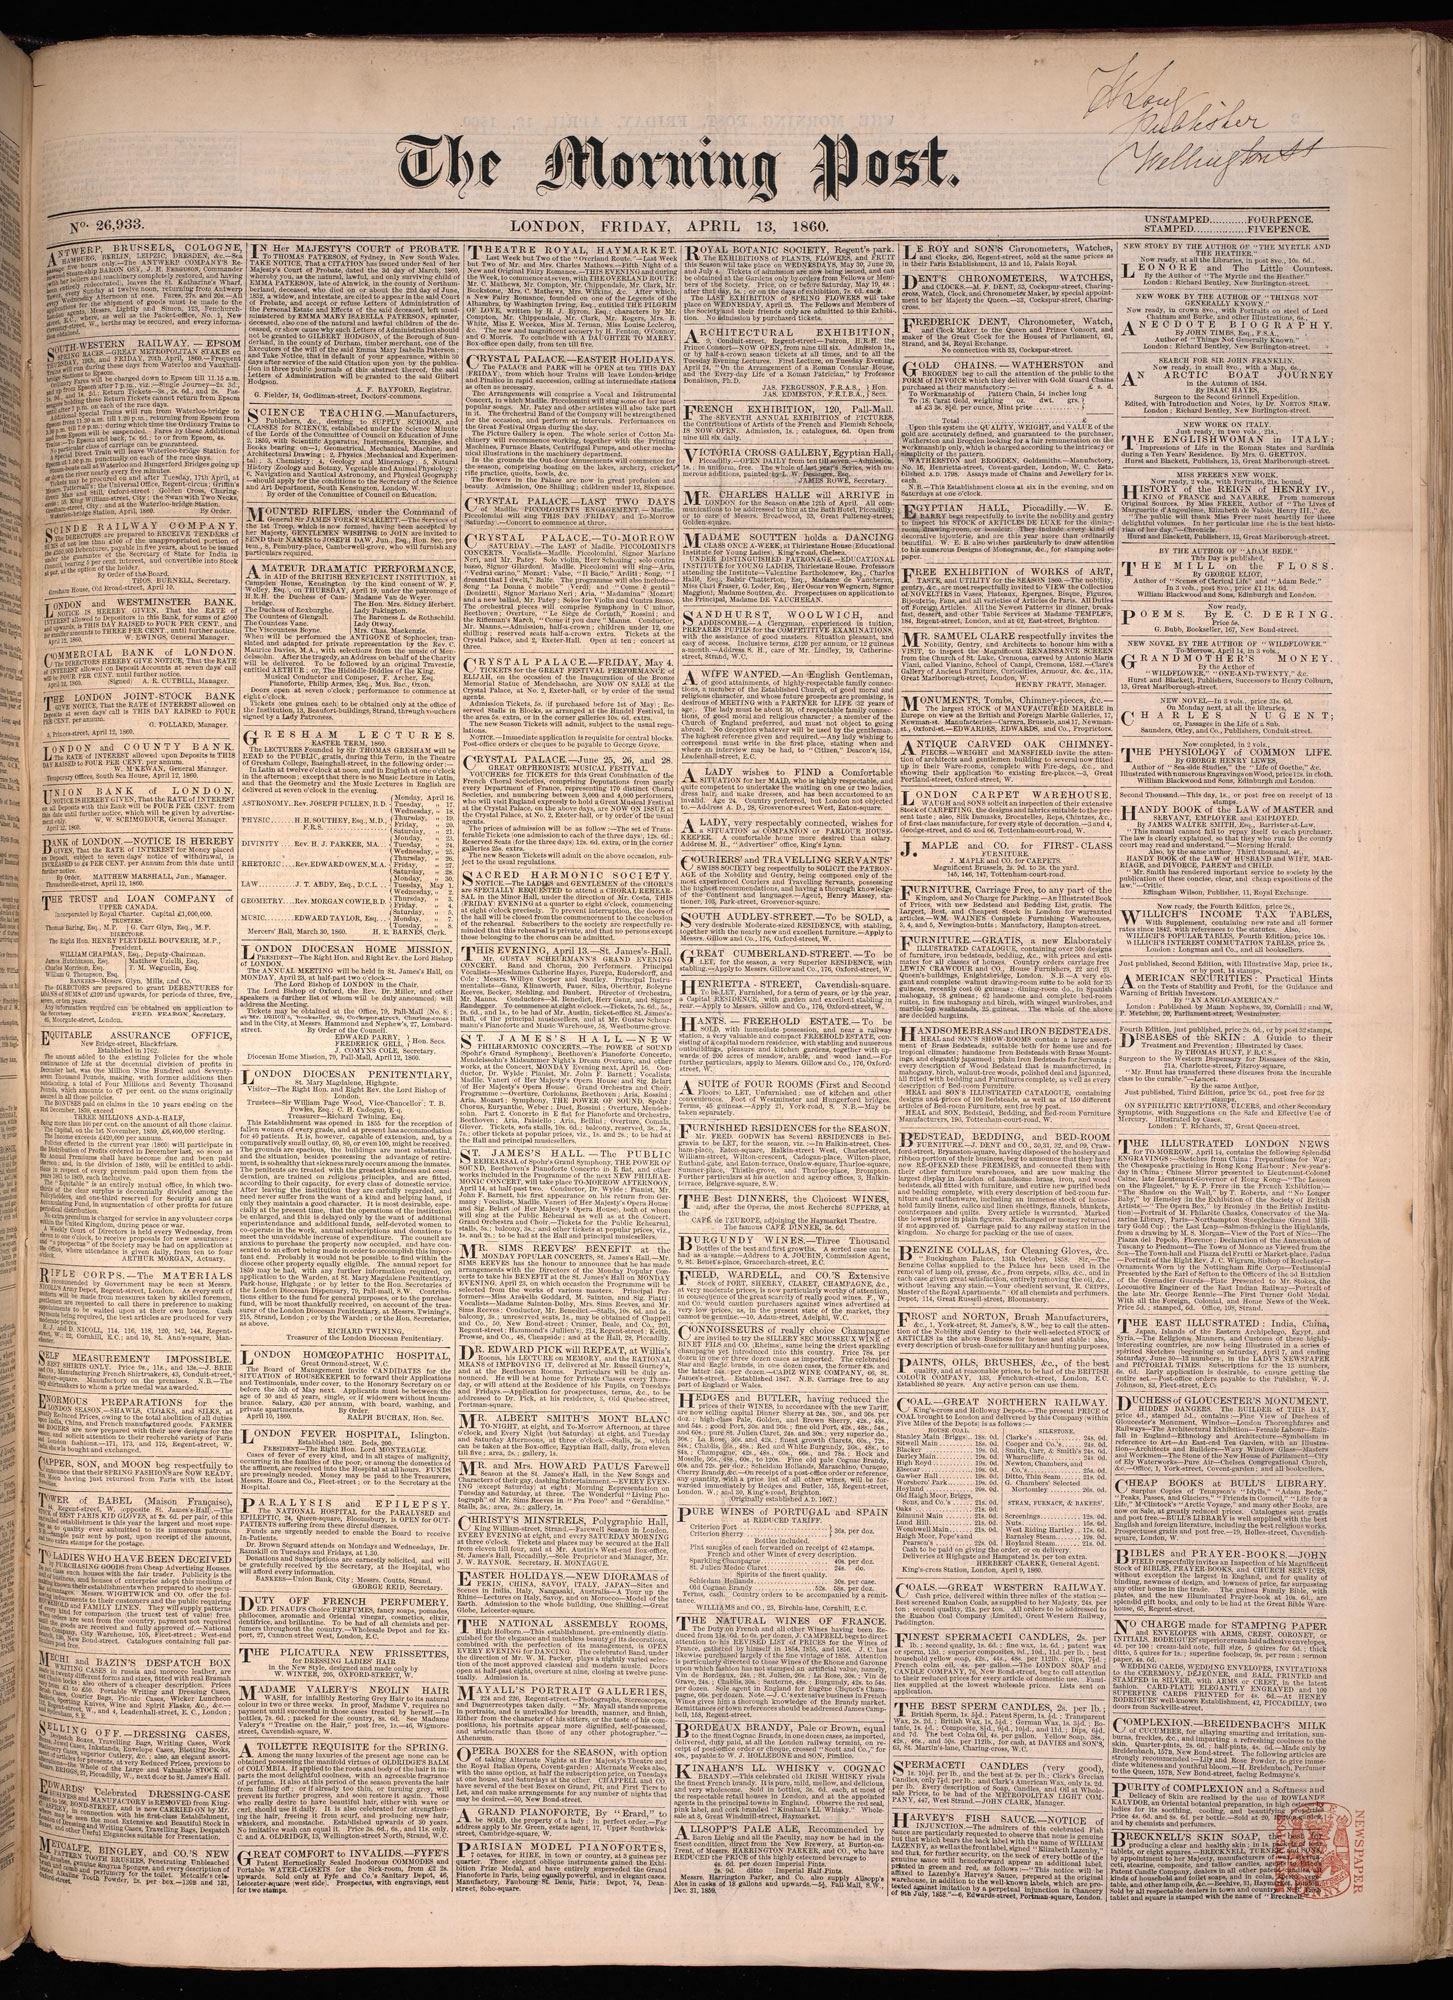 Advertisement for a house for 'fallen women' from the Morning Post